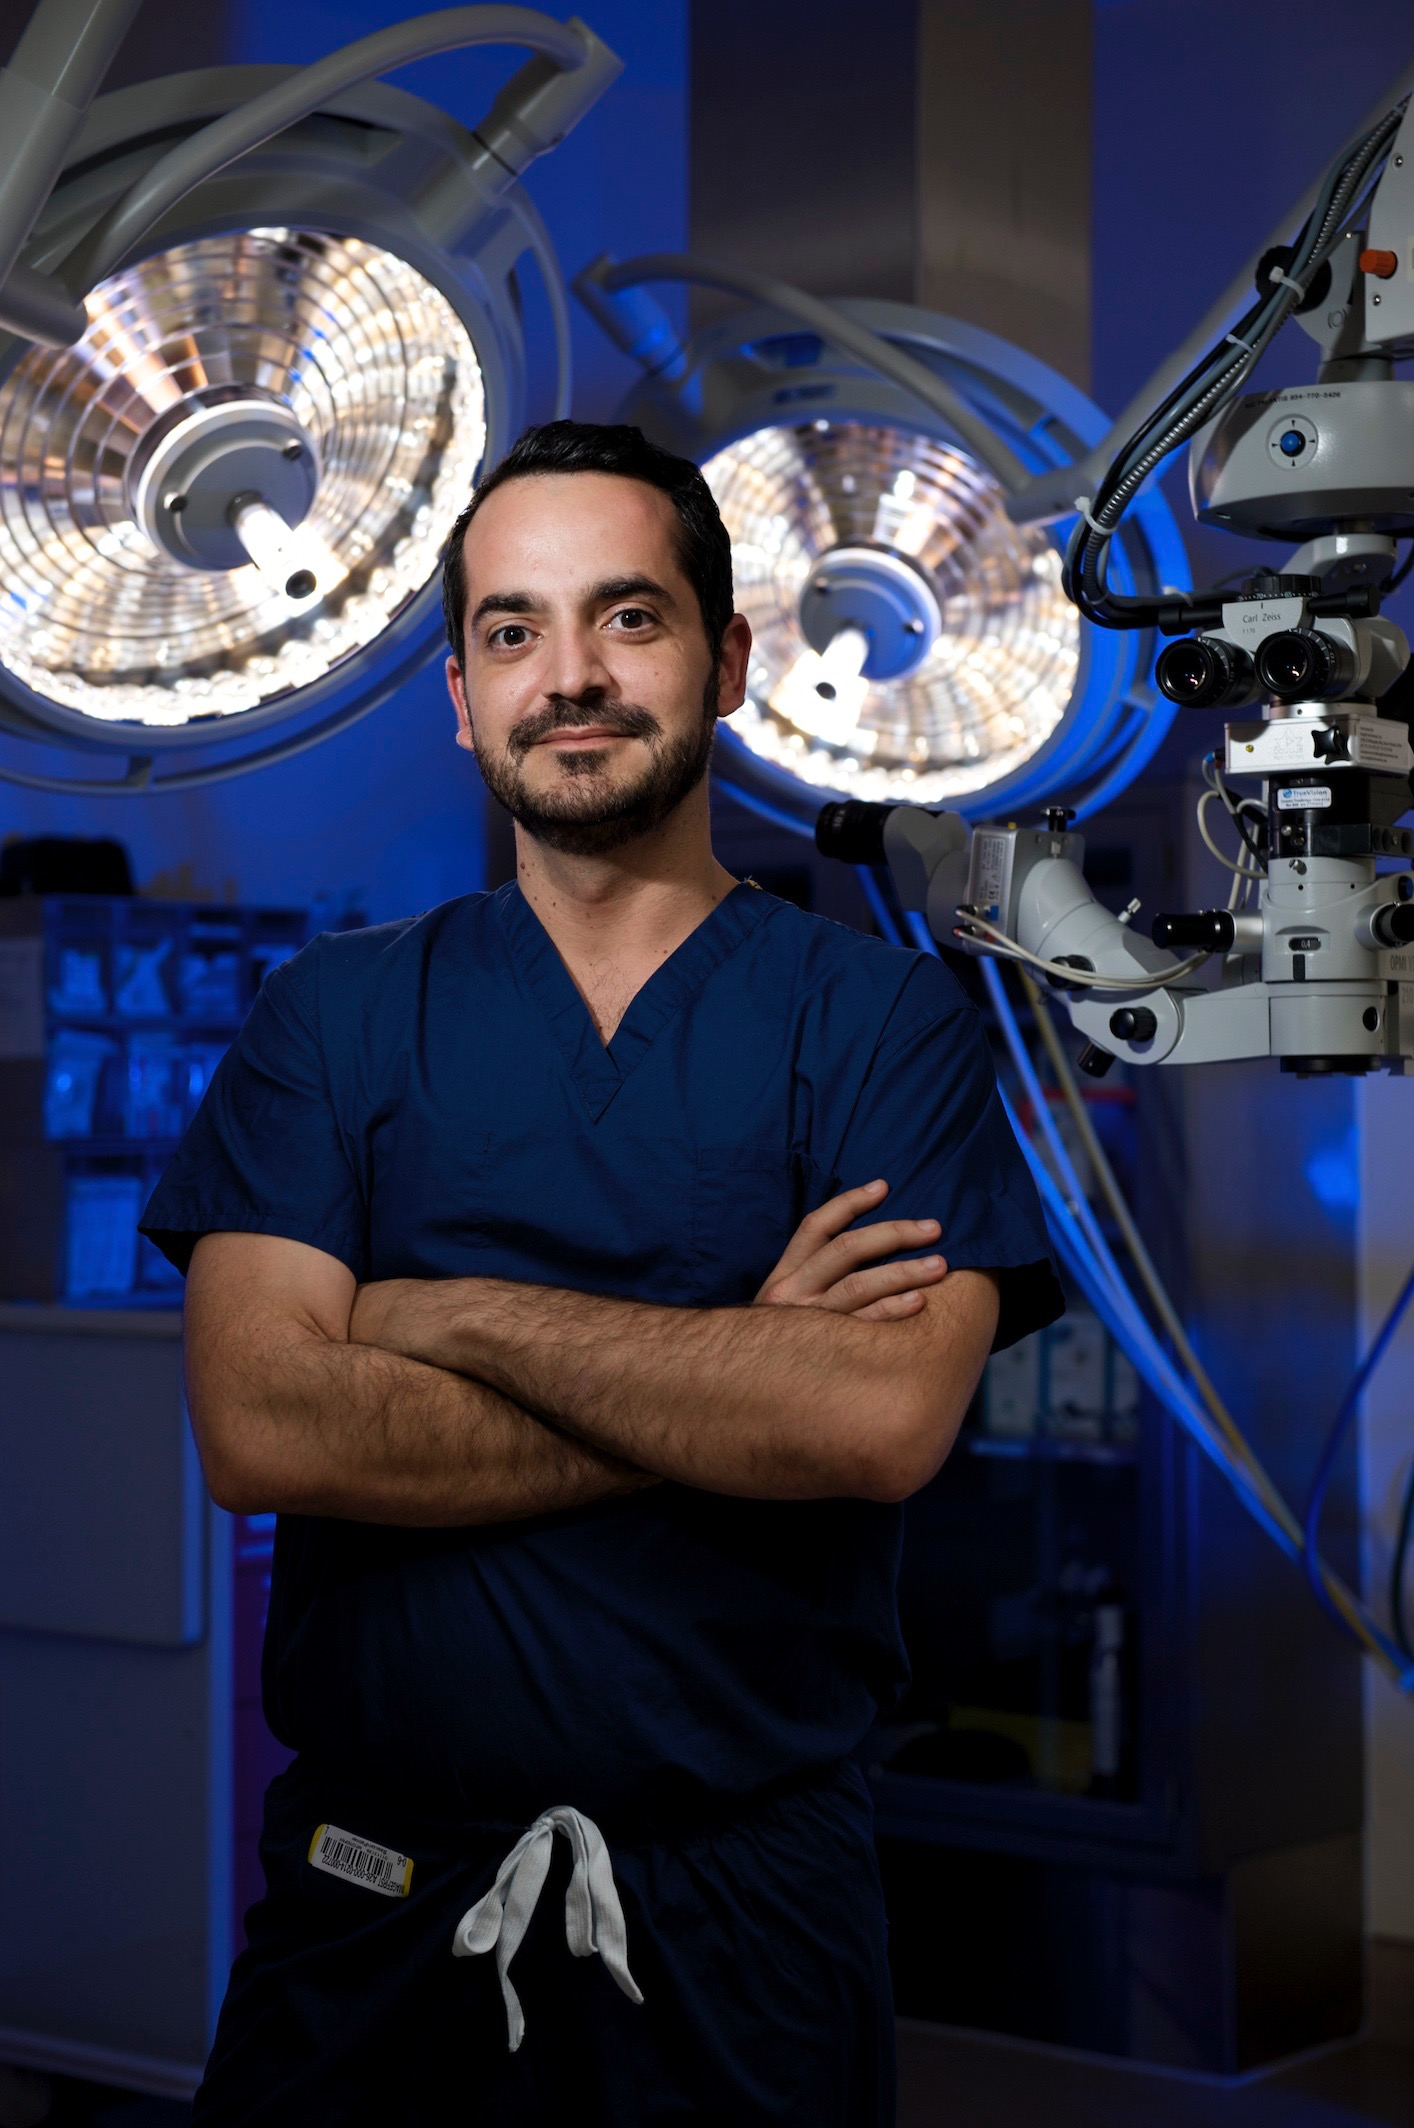 Episode 83: Dr  Jorge Fortun on Heads-Up Surgery and More